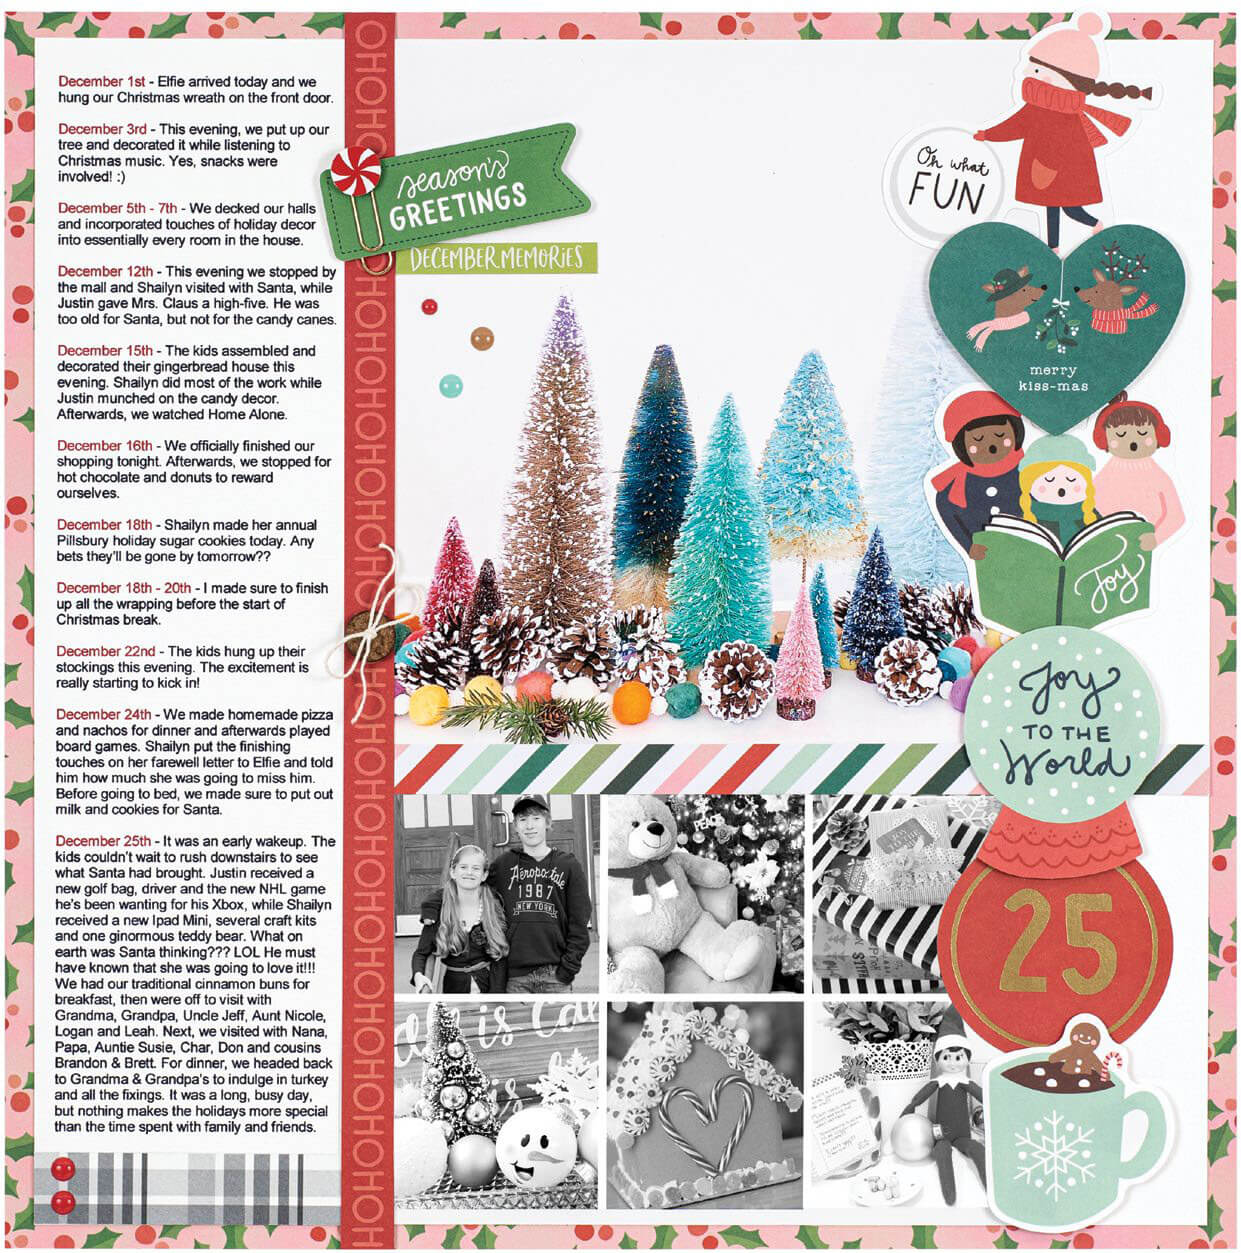 Scrapbook & Cards Today - Winter 2019 - Joy To The World layout by Sheri Reguly